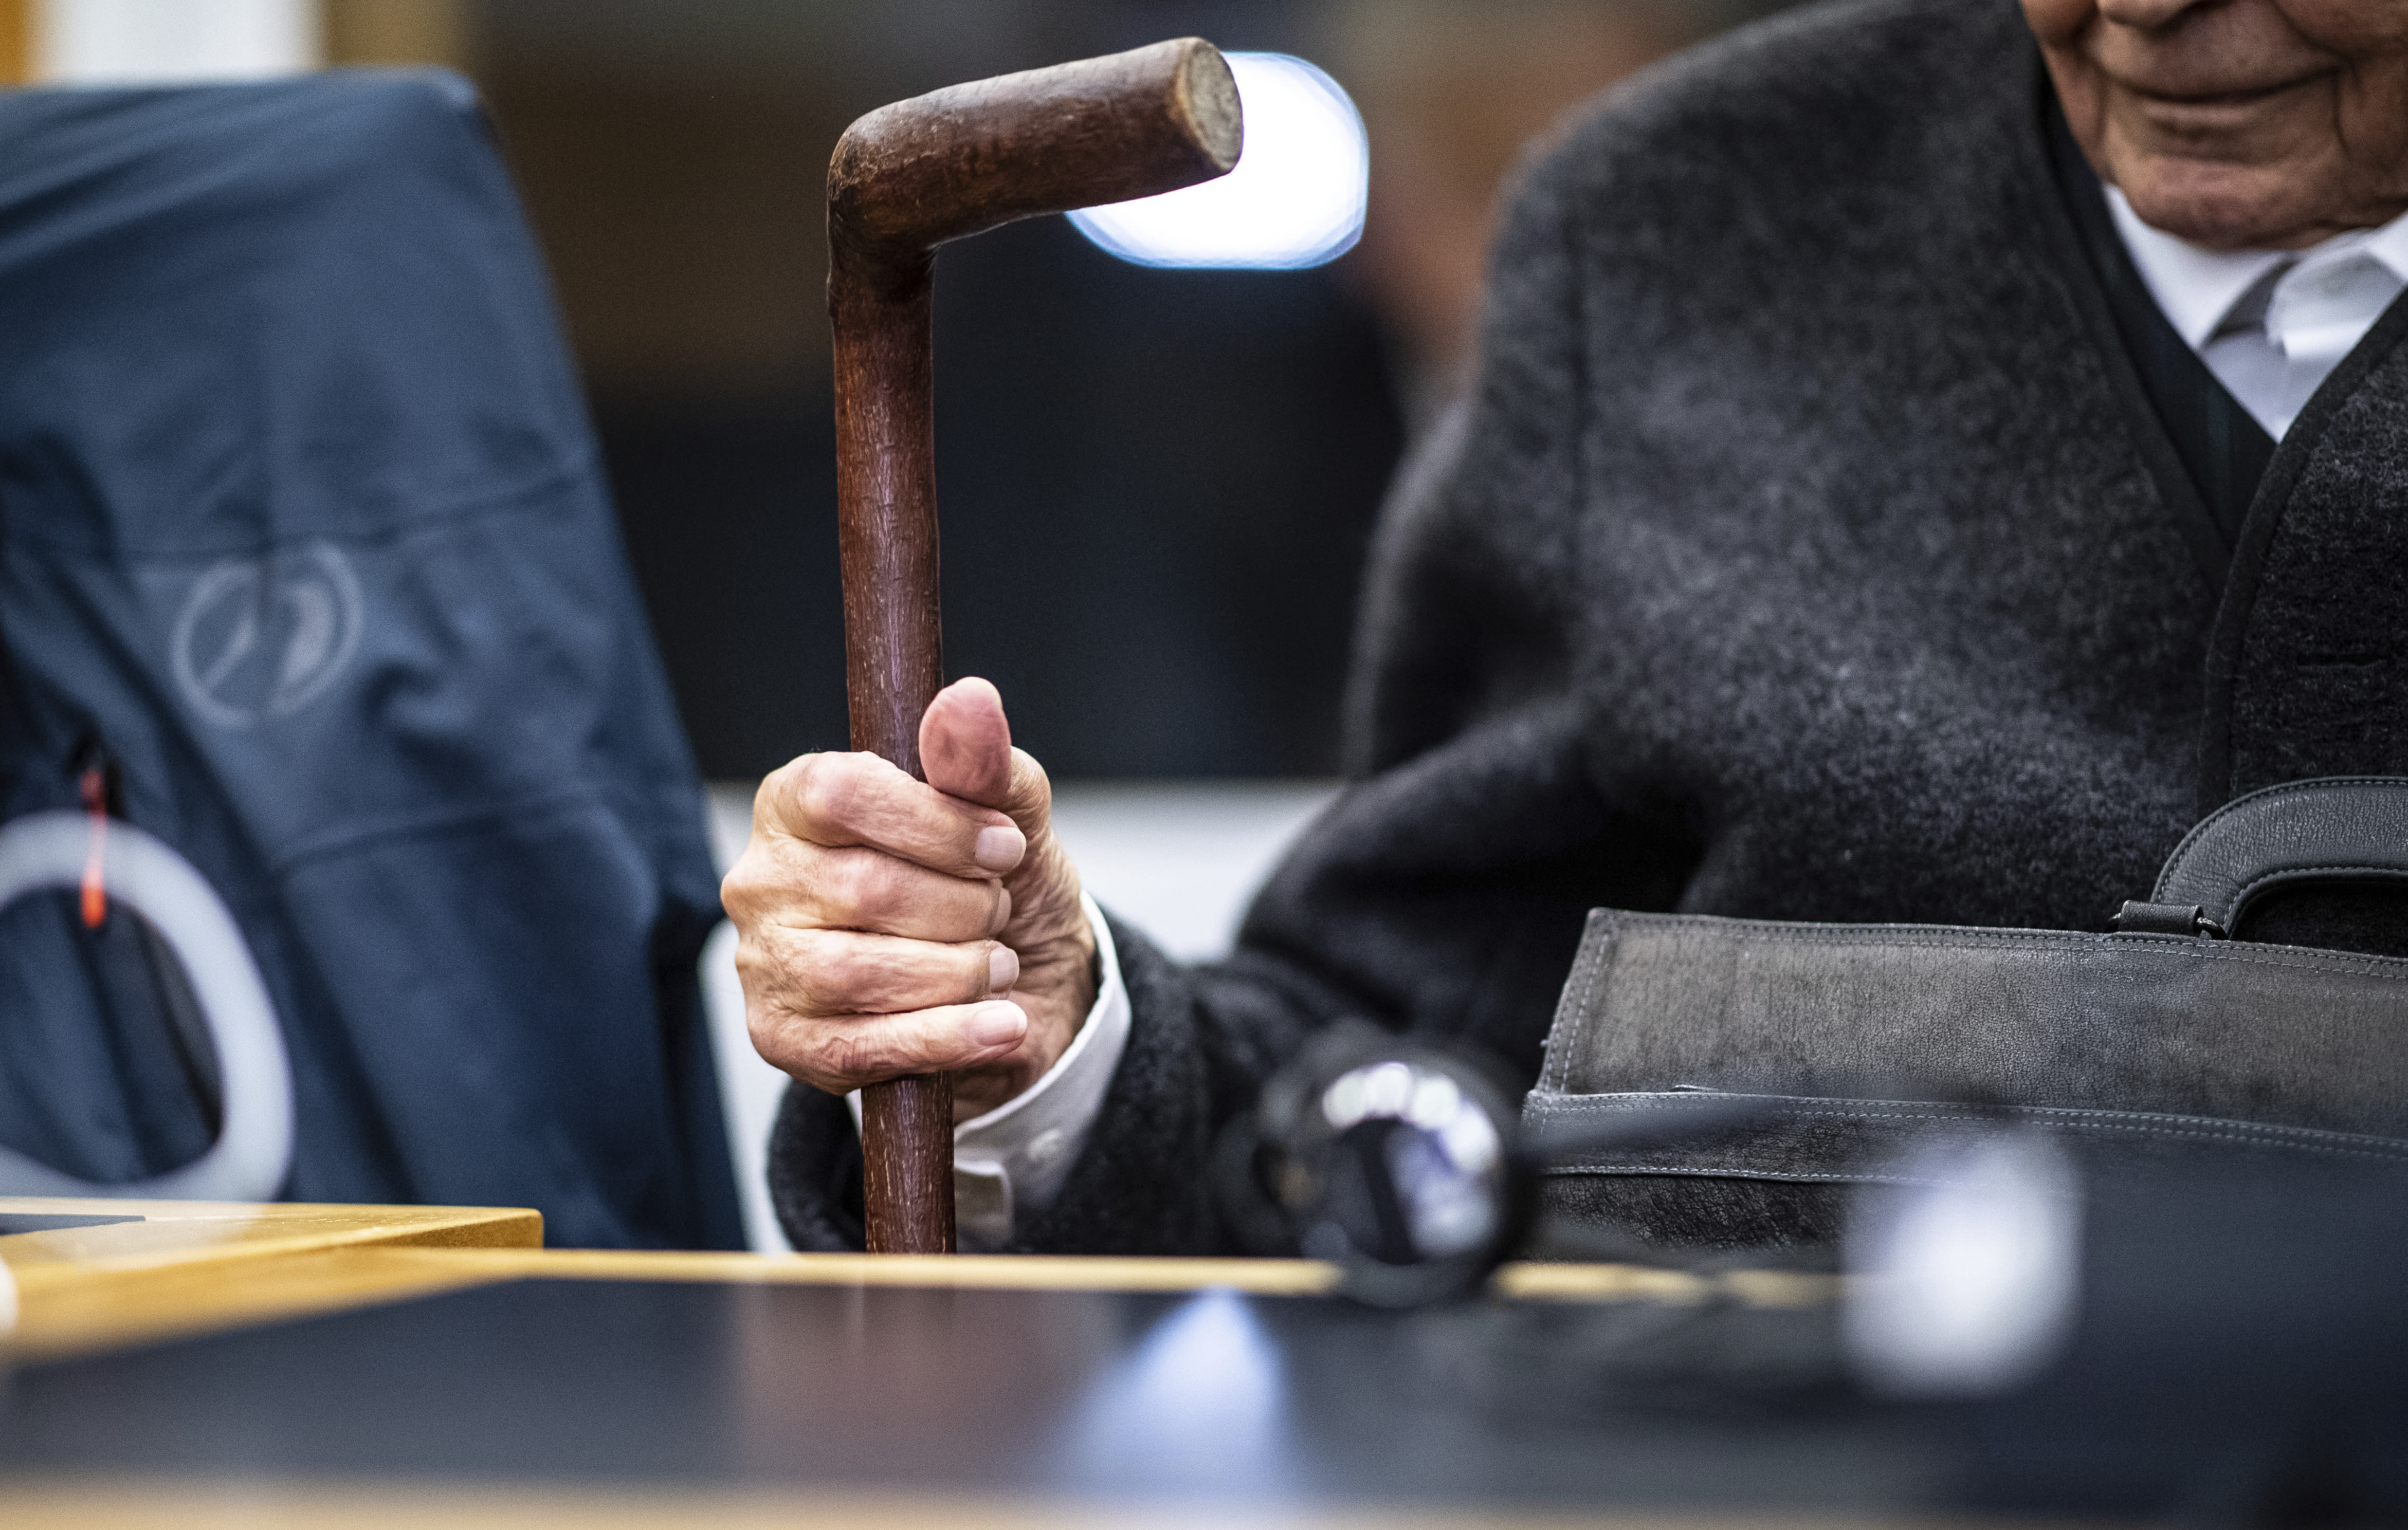 Johann Rehbogen, a 94-year-old former SS enlisted man, who is accused of hundreds of counts of accessory to murder for alleged crimes committed during the years he served as a guard at the Nazis' Stutthof concentration camp, waits for the beginning of the third day of his trial at the regional court in Muenster, western Germany, Tuesday, Nov. 13, 2018. (Guido Kirchner/pool photo via AP)